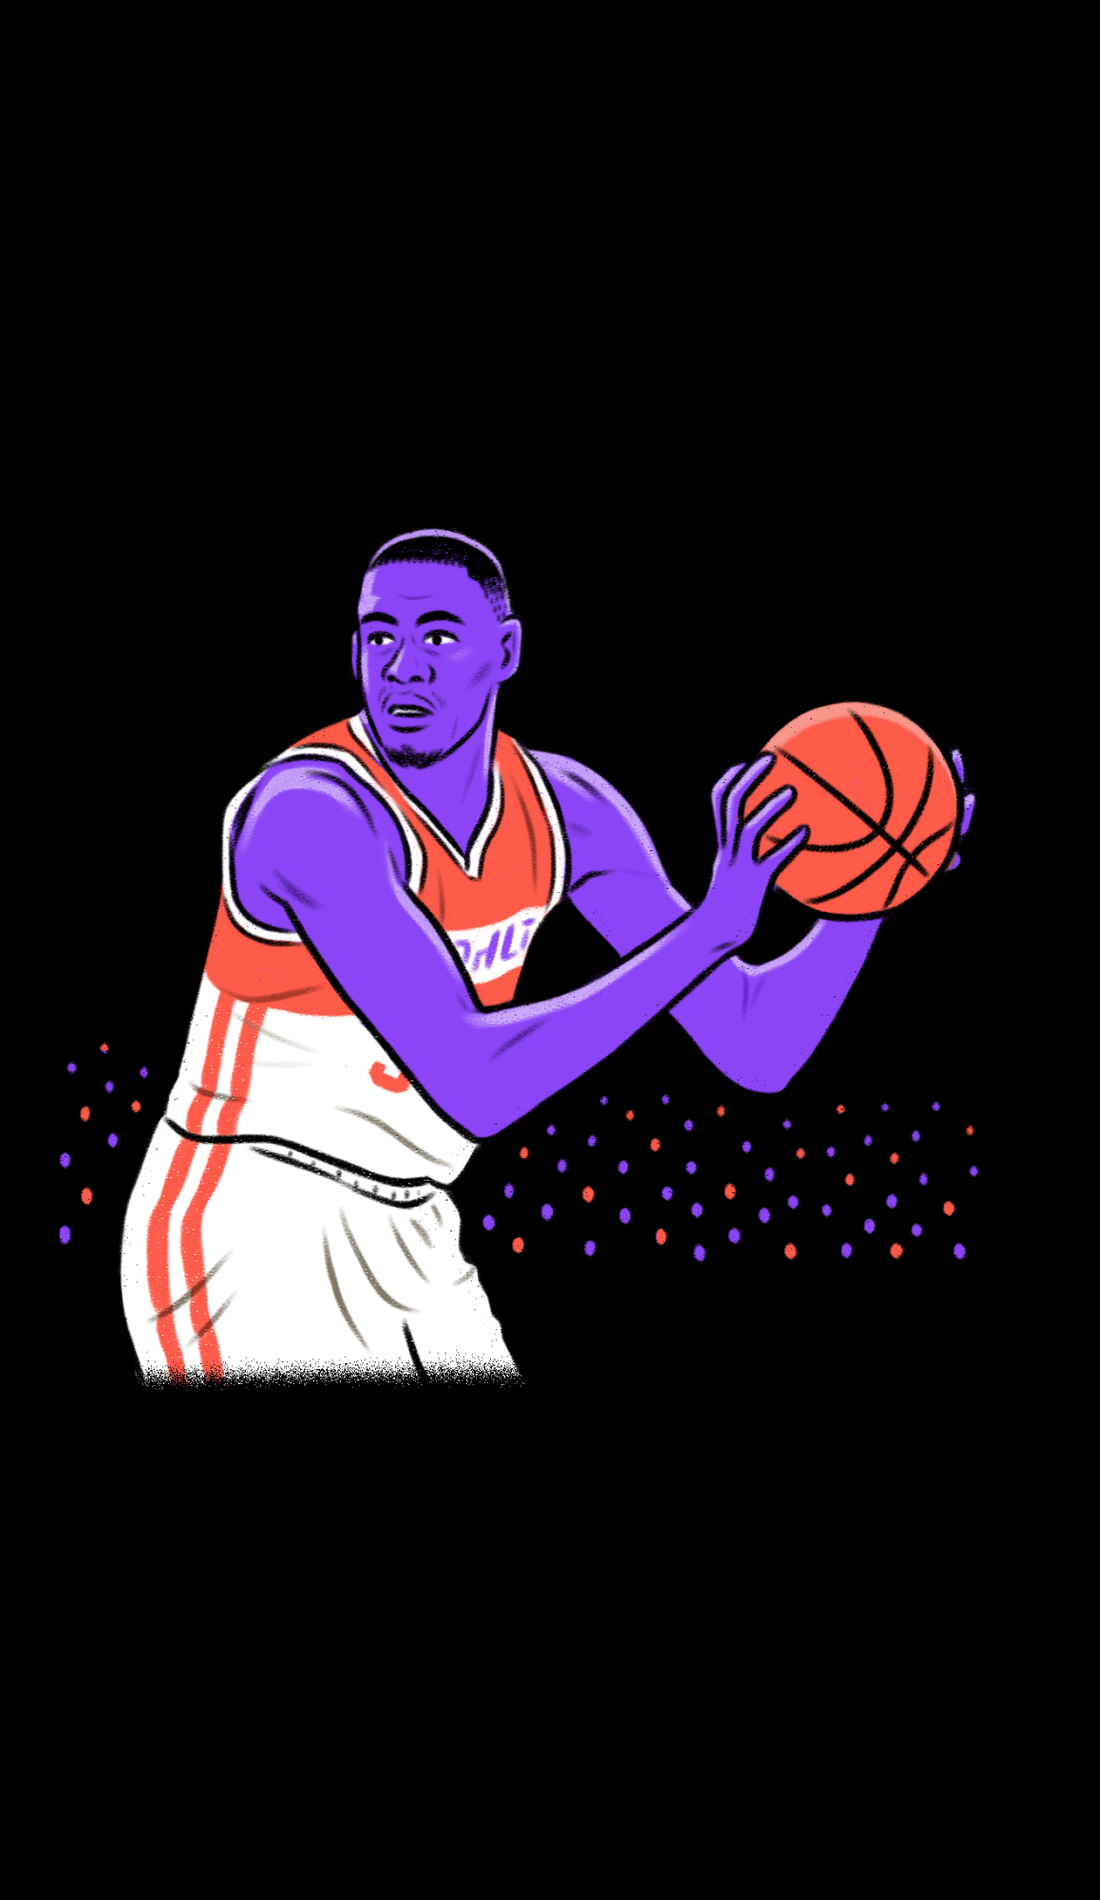 A St Francis BKN Terriers Basketball live event